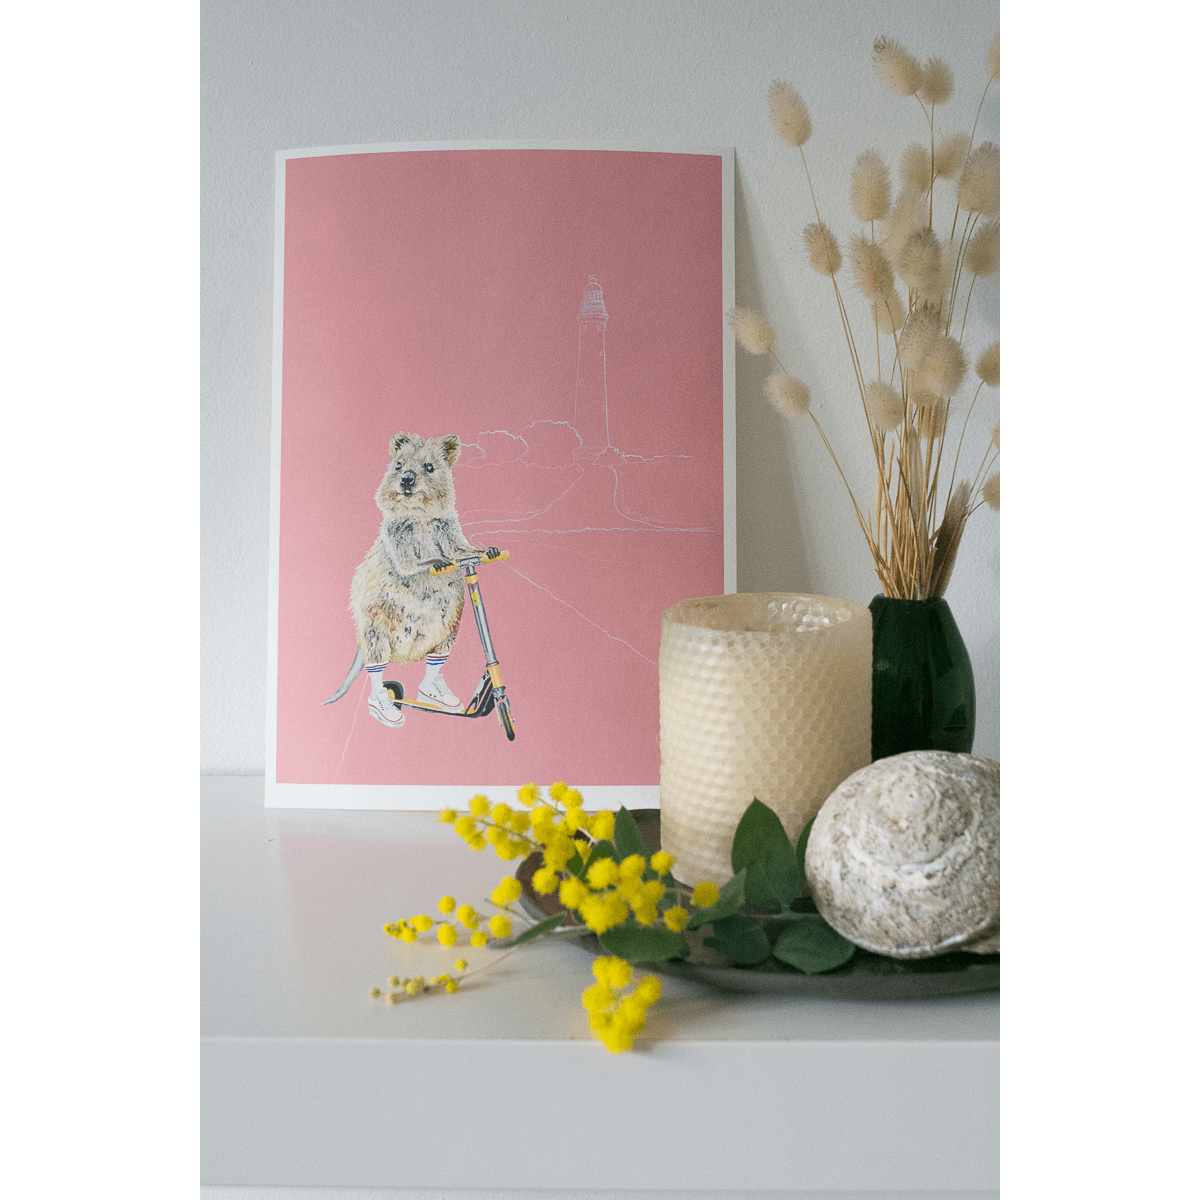 An Art print of a quokka riding a scooter on Rottnest Island, Western Australia. Styled in an Australiana themed kids bedroom. Created by Good Art.